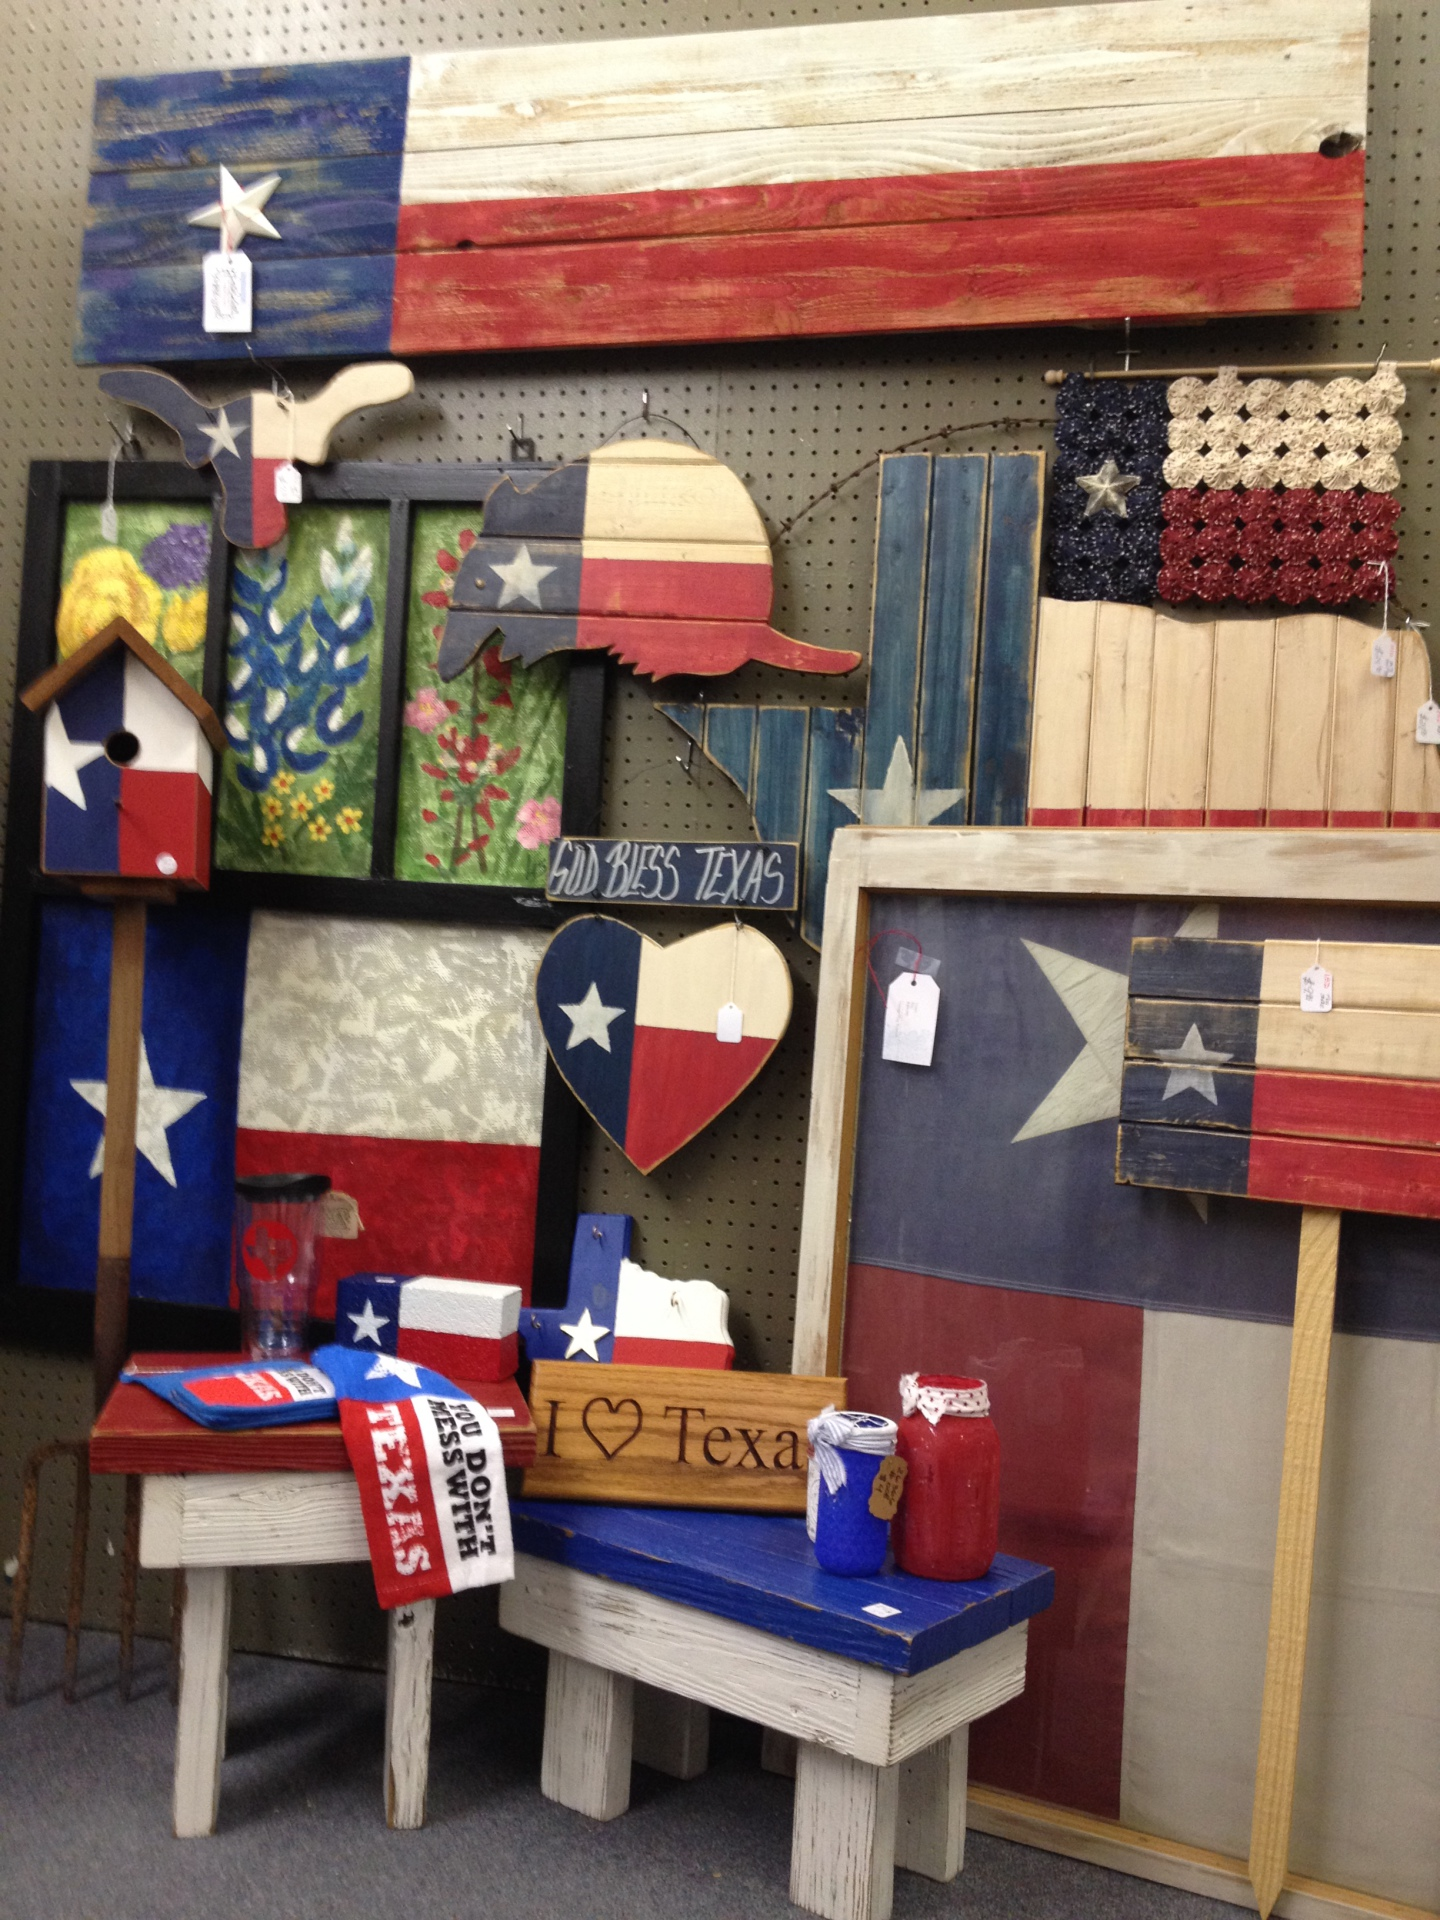 "Texas flags, Texas signs, old windows with flags, wood stools, armadillos, ""I love Texas"" signs"